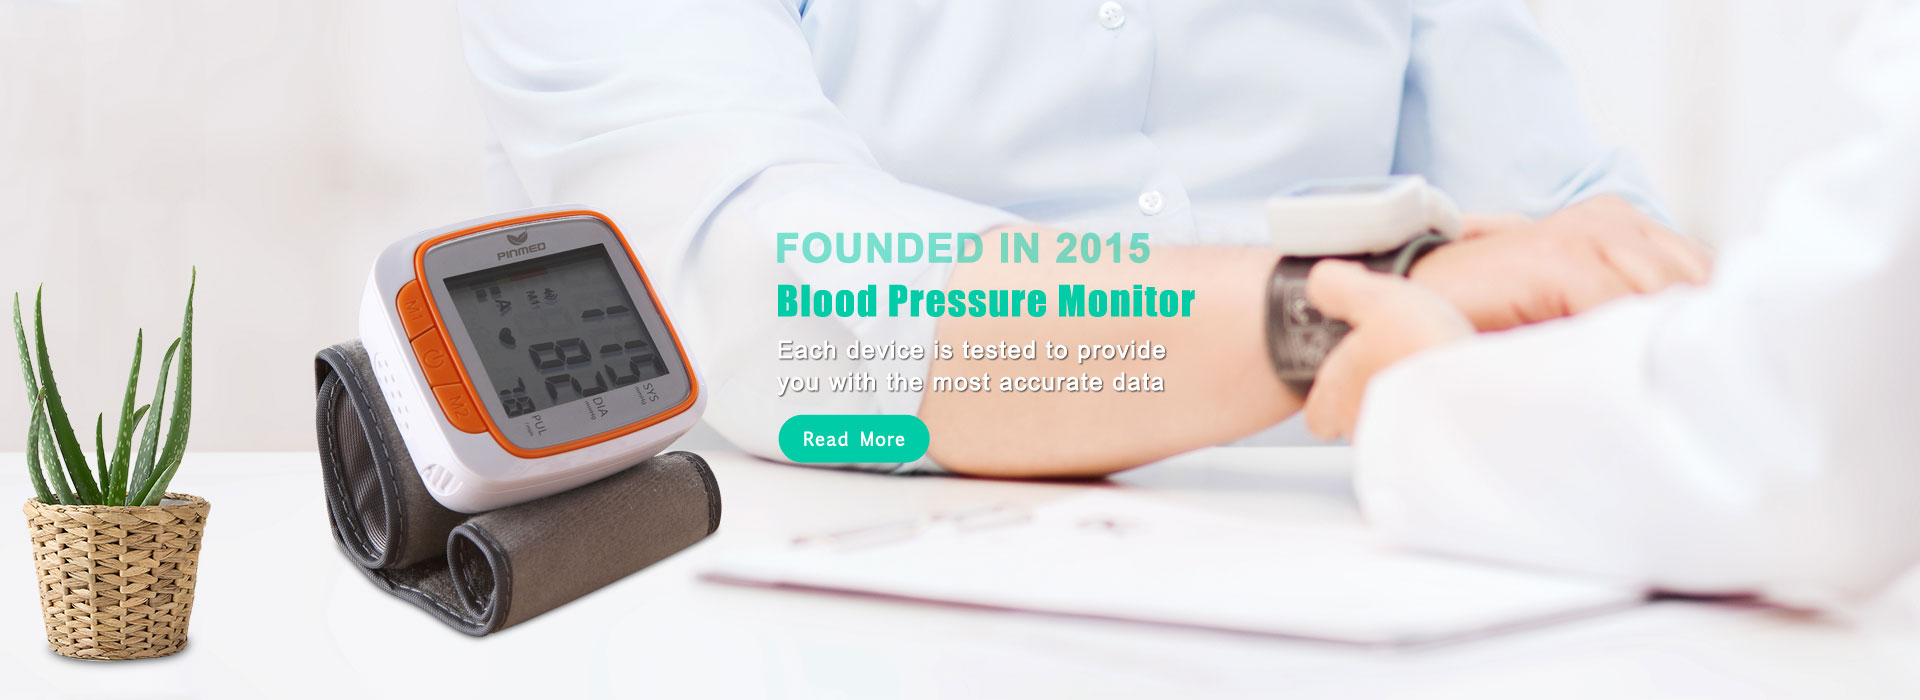 Blood Pressure Monitor Factory